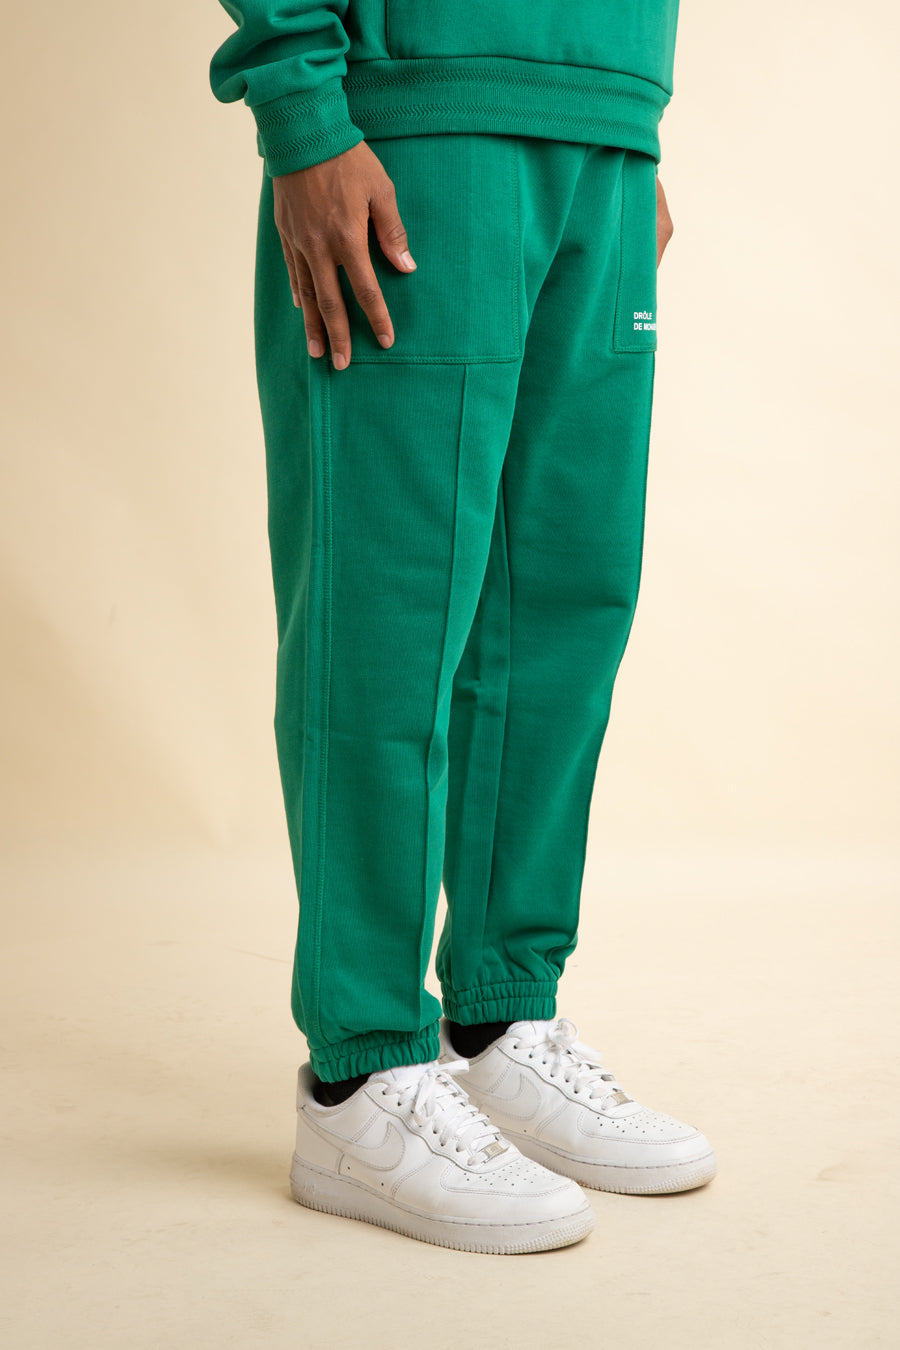 Green Pleated Sweatpants